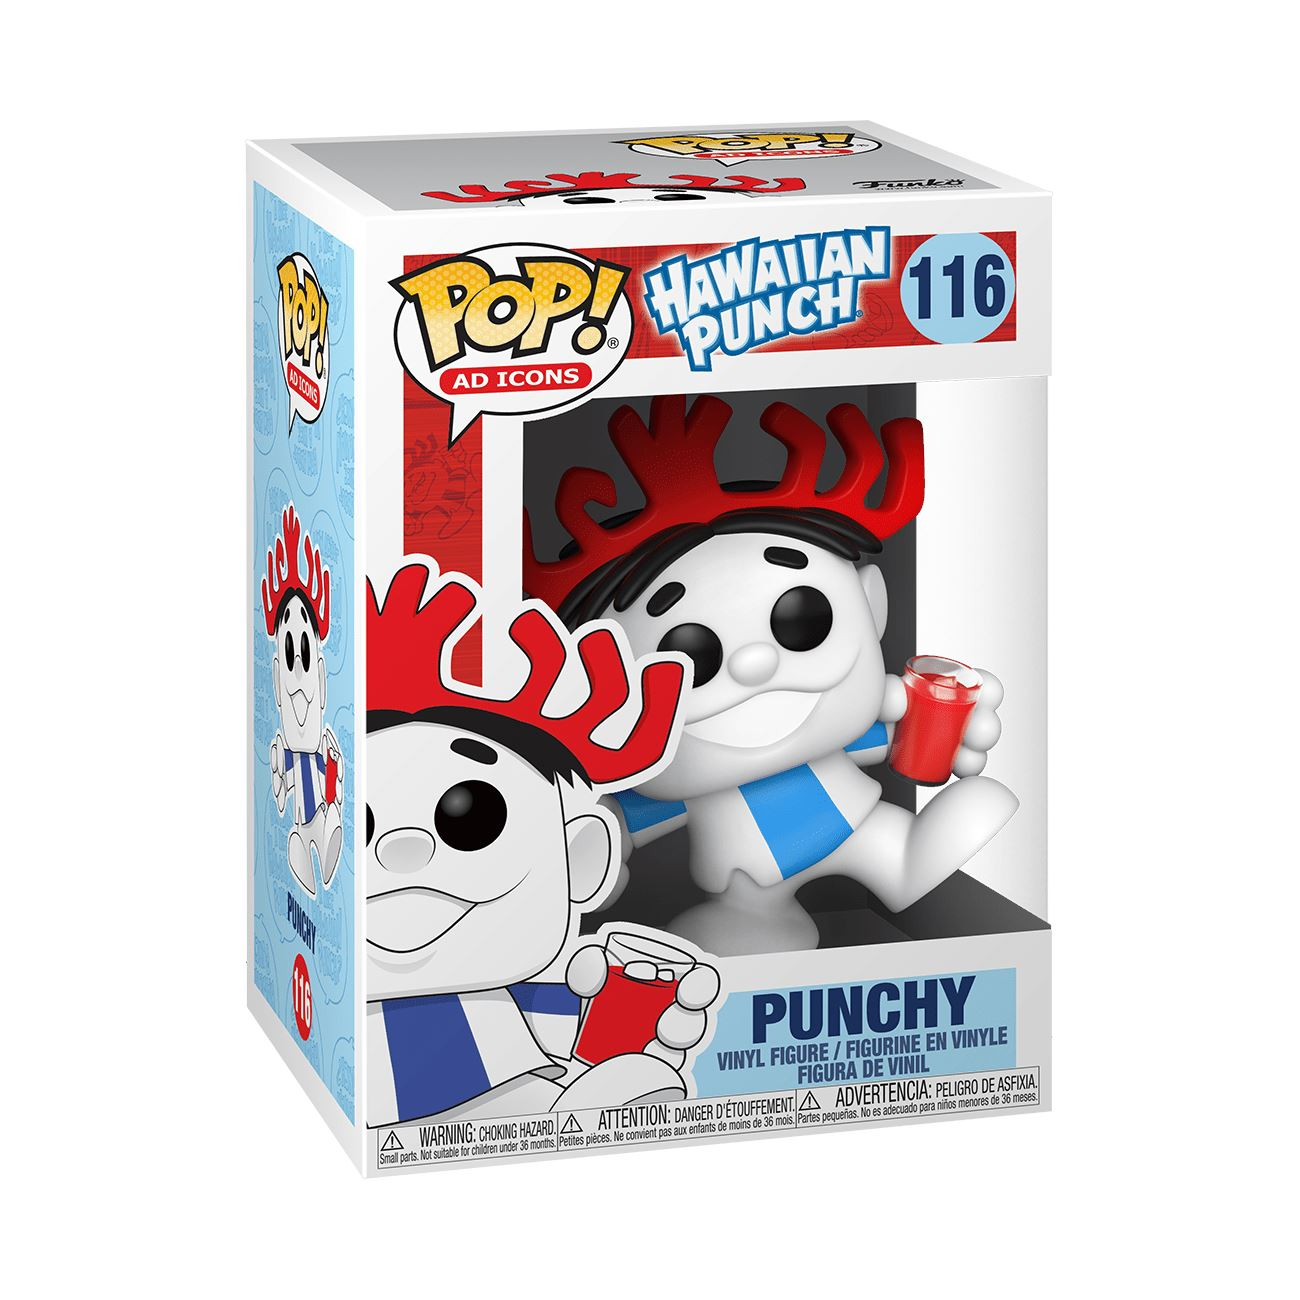 Punchy#116 Hawaiian Punch Funko POP! Ad Icons [PRE-ORDER] Pop! Funko